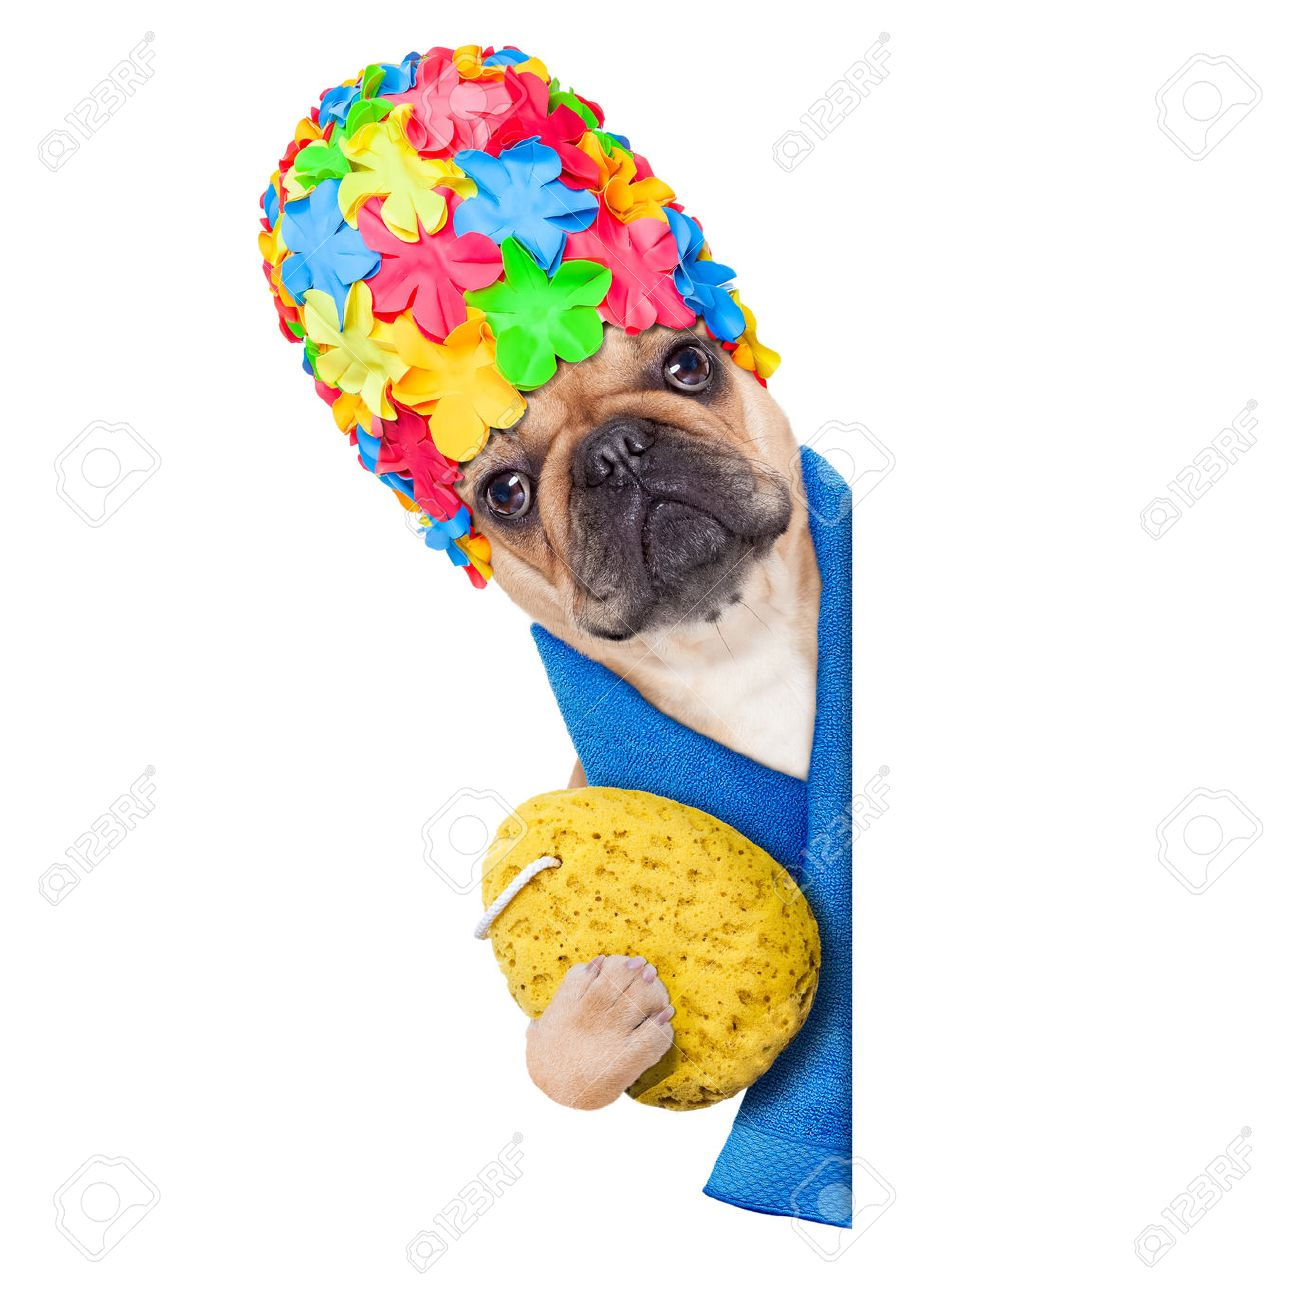 1fcc8acde9d7a1 french bulldog dog ready to have a bath or a shower wearing a bathing cap  holding